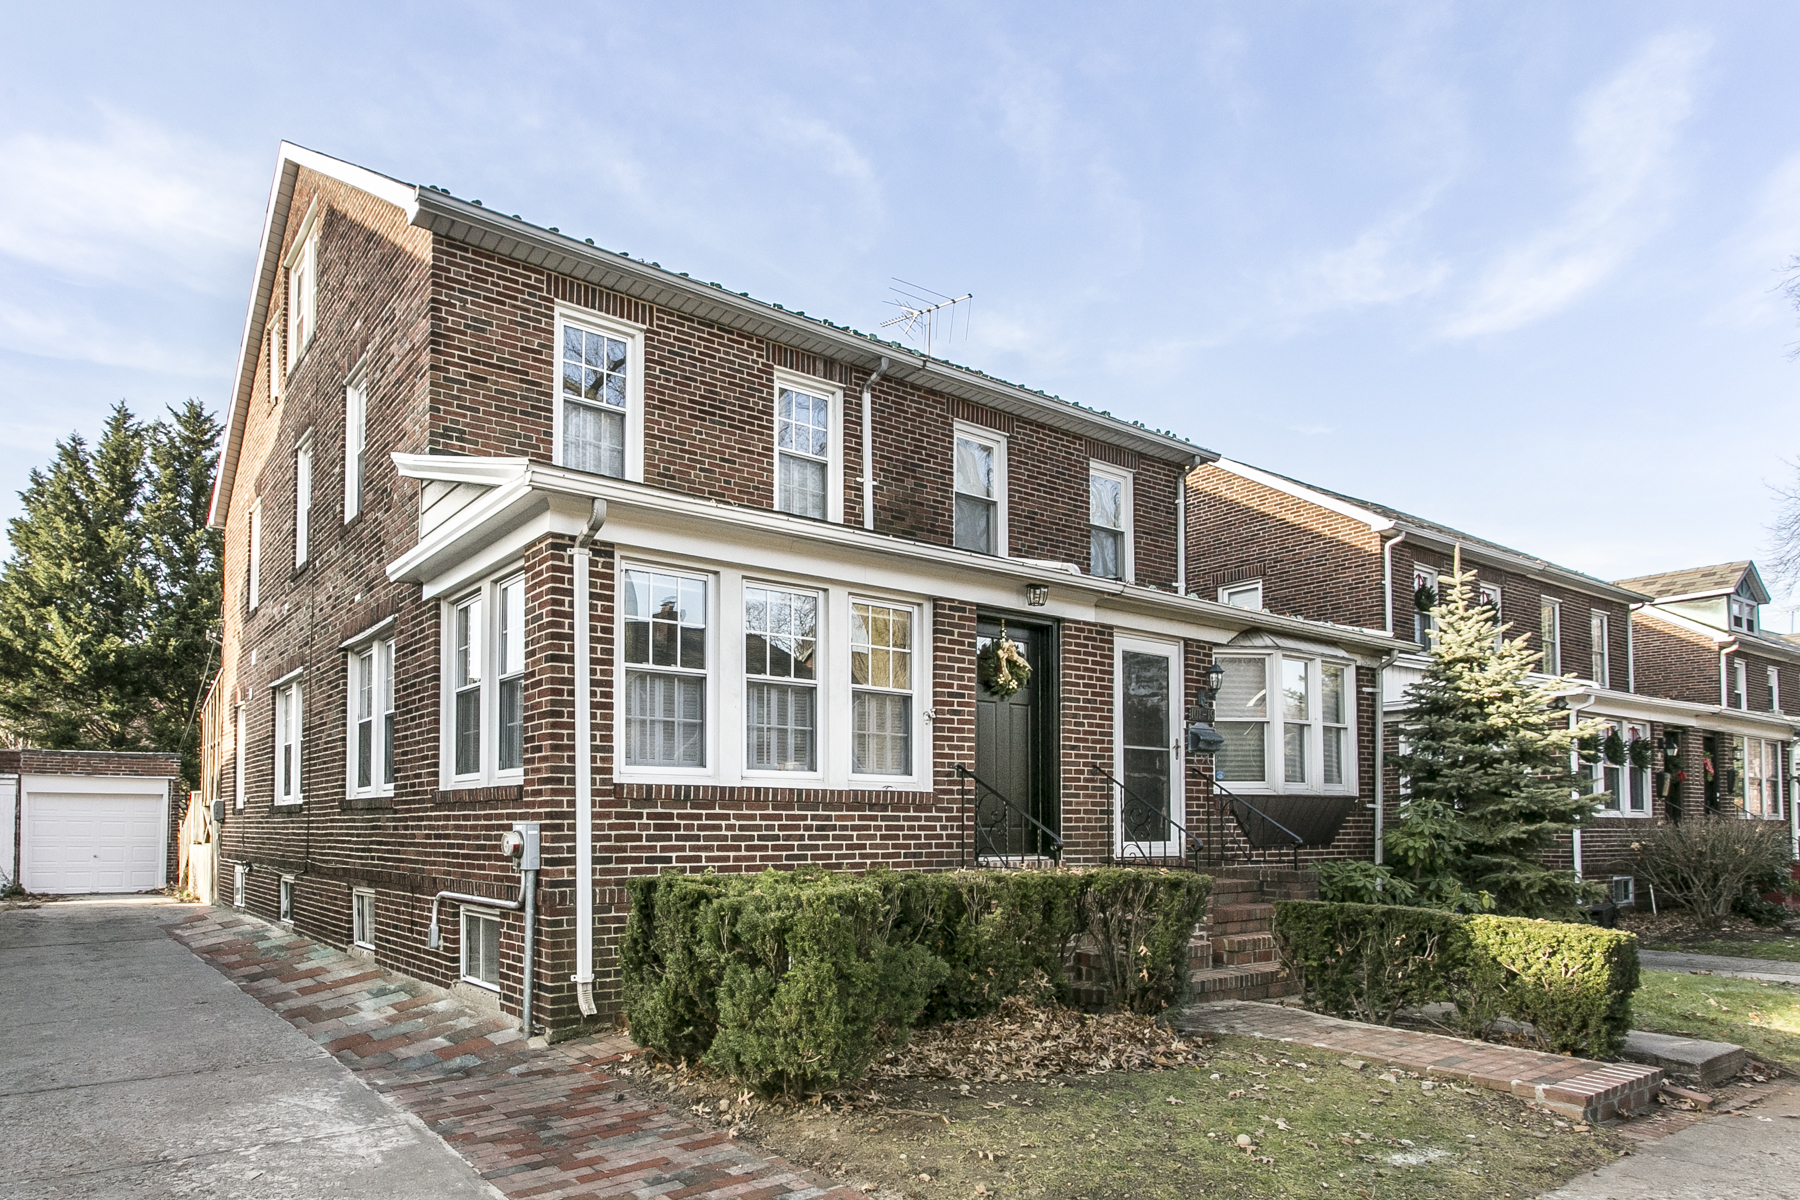 """Townhouse for Sale at """"DESIGNER TOWNHOUSE"""" 101-17 75 Road, Forest Hills, New York 11375 United States"""